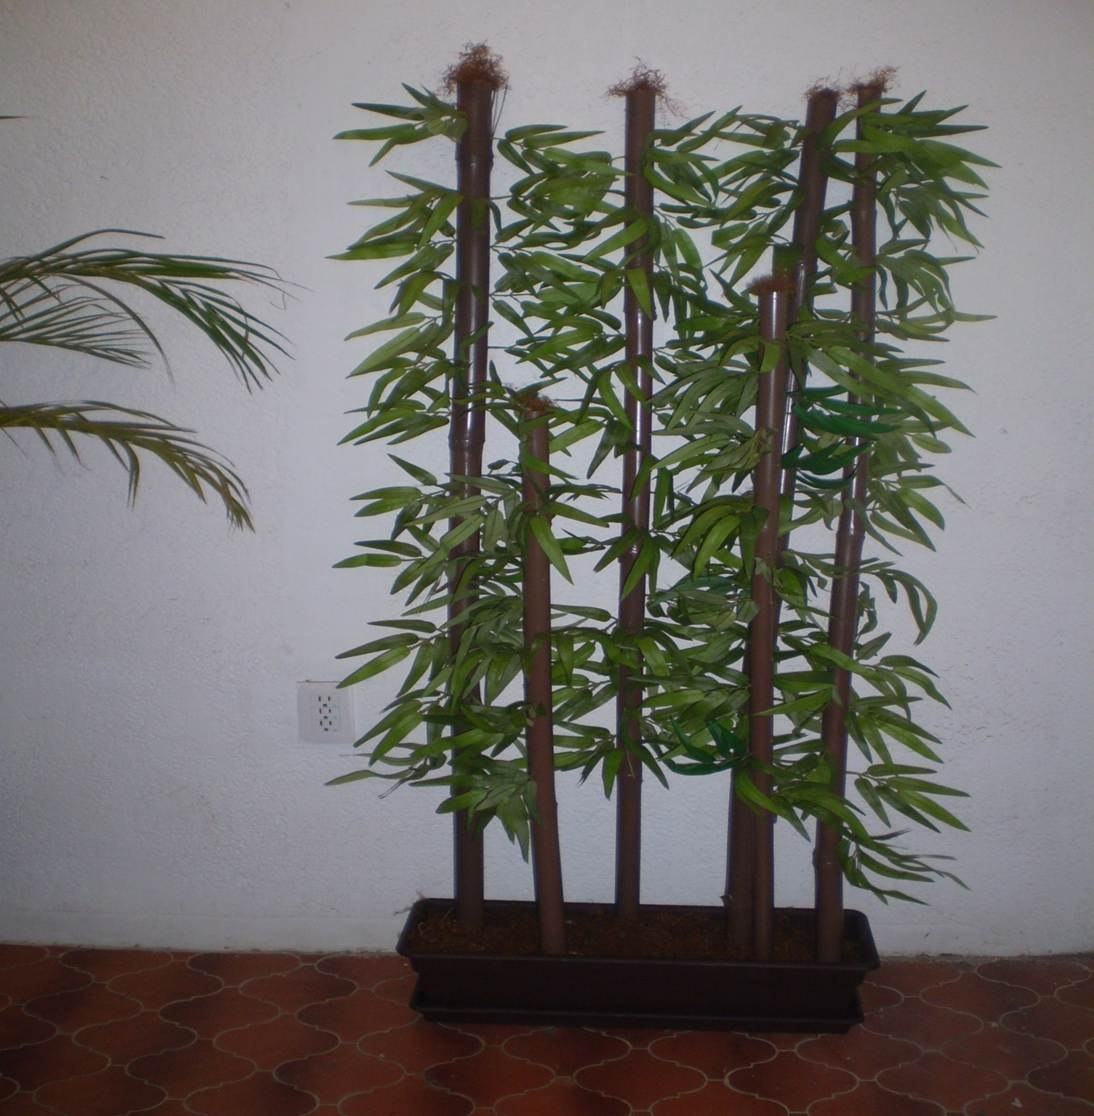 Bambu artificial decorativo 2 en mercado libre - Plantas artificiales decorativas ...